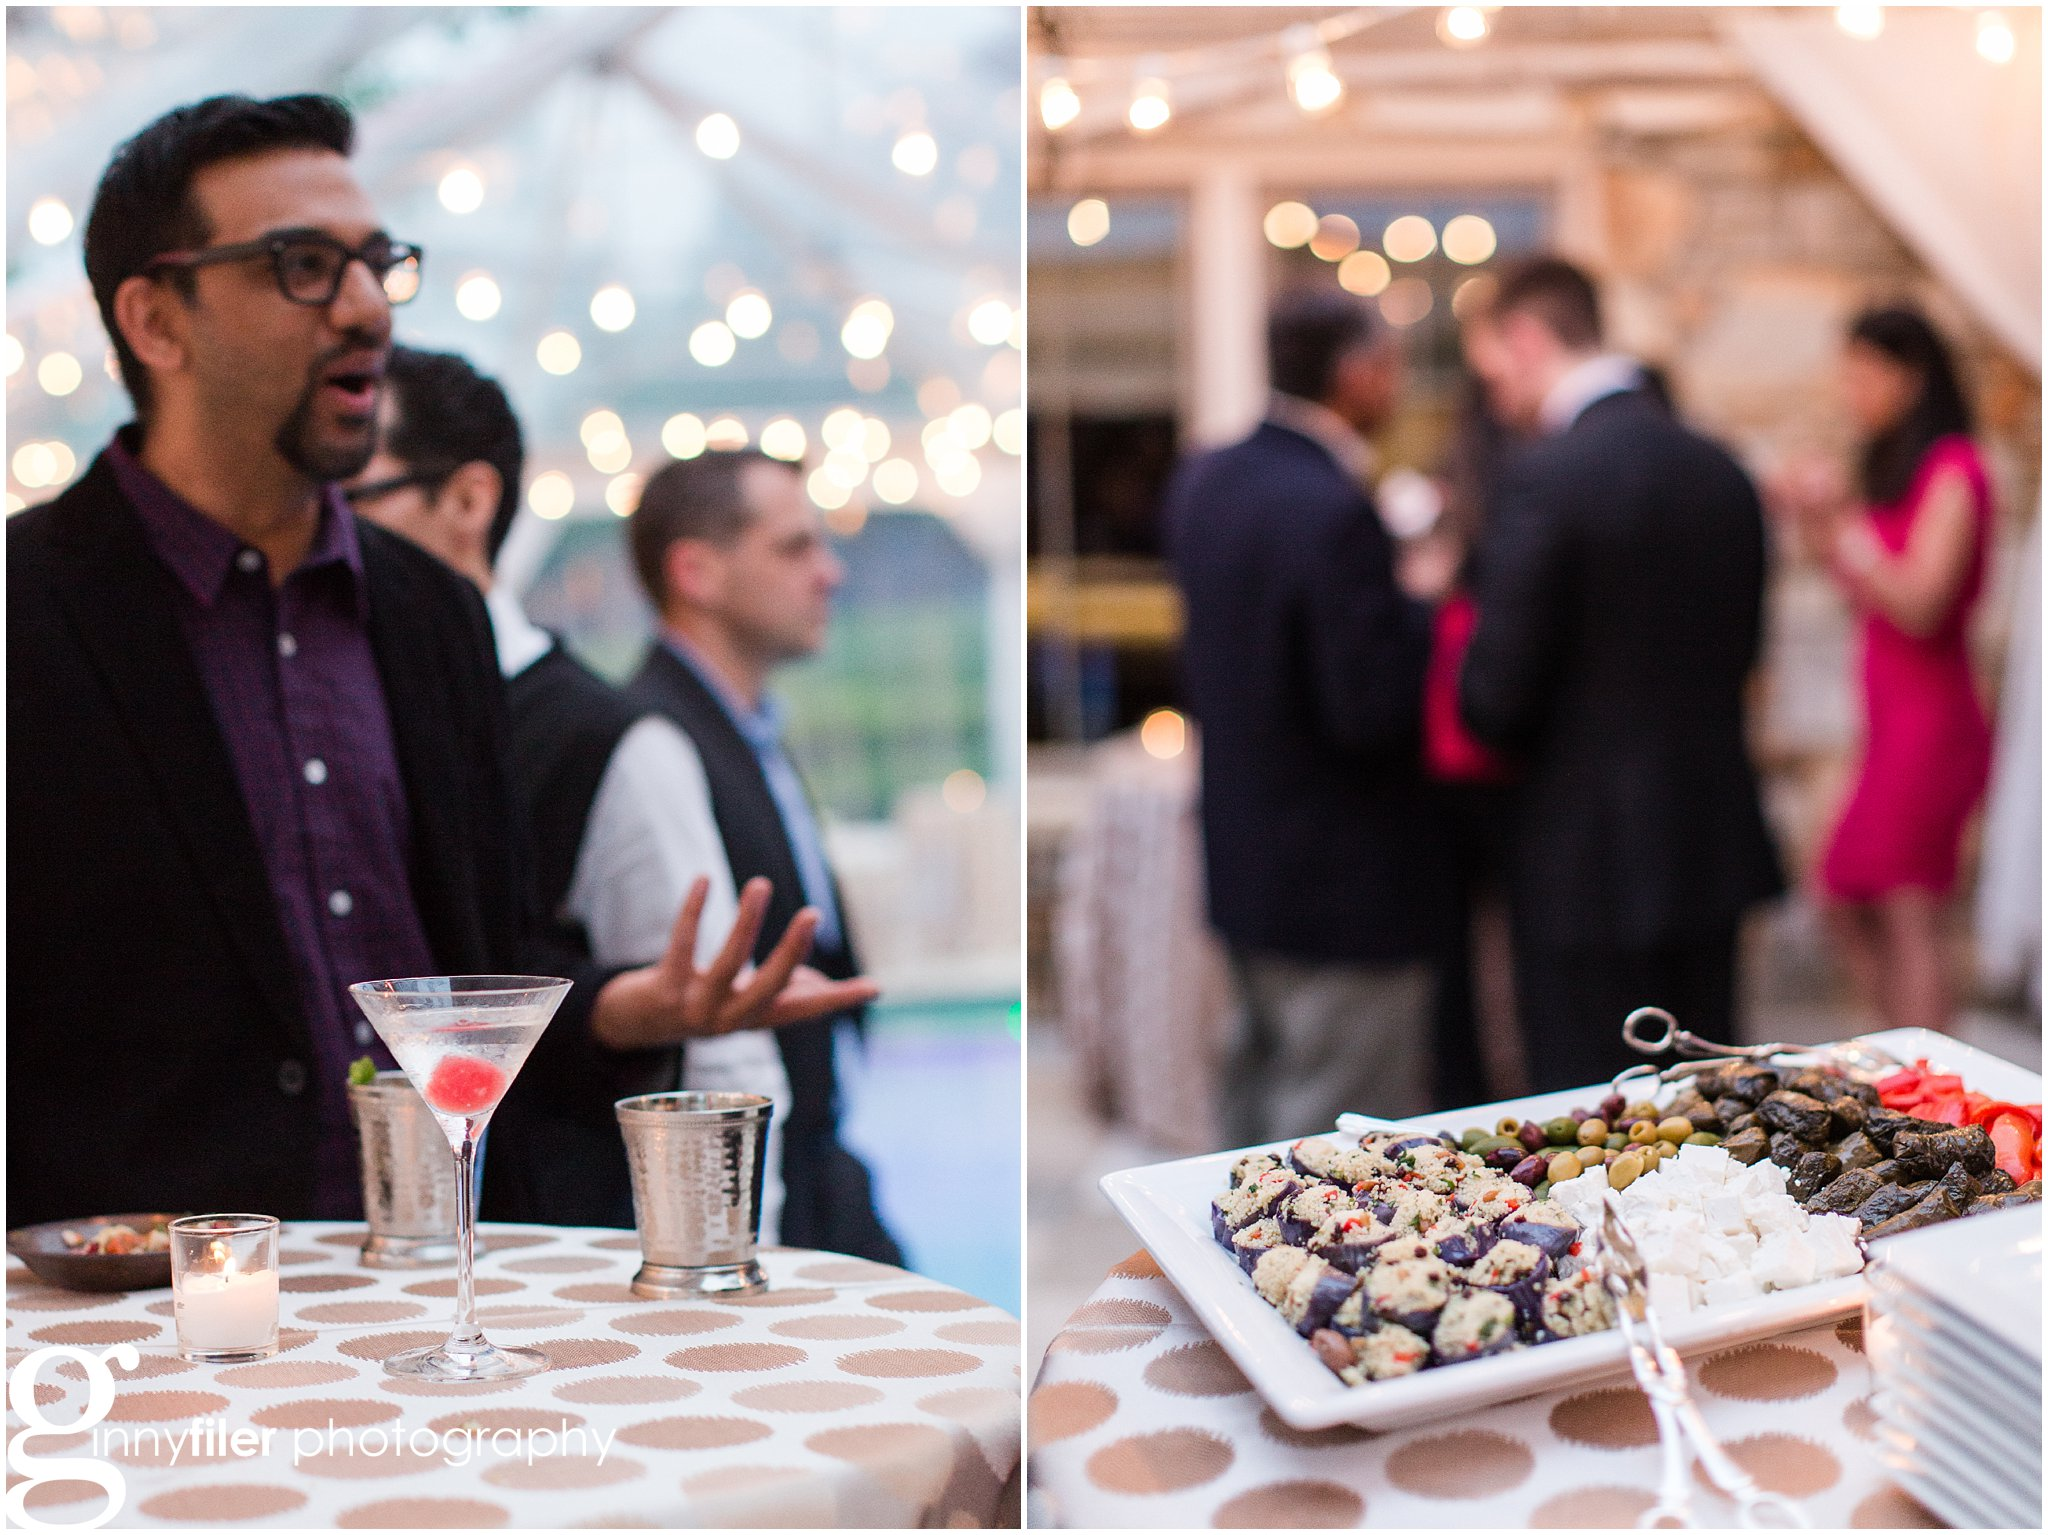 event_photography_party_0020.jpg